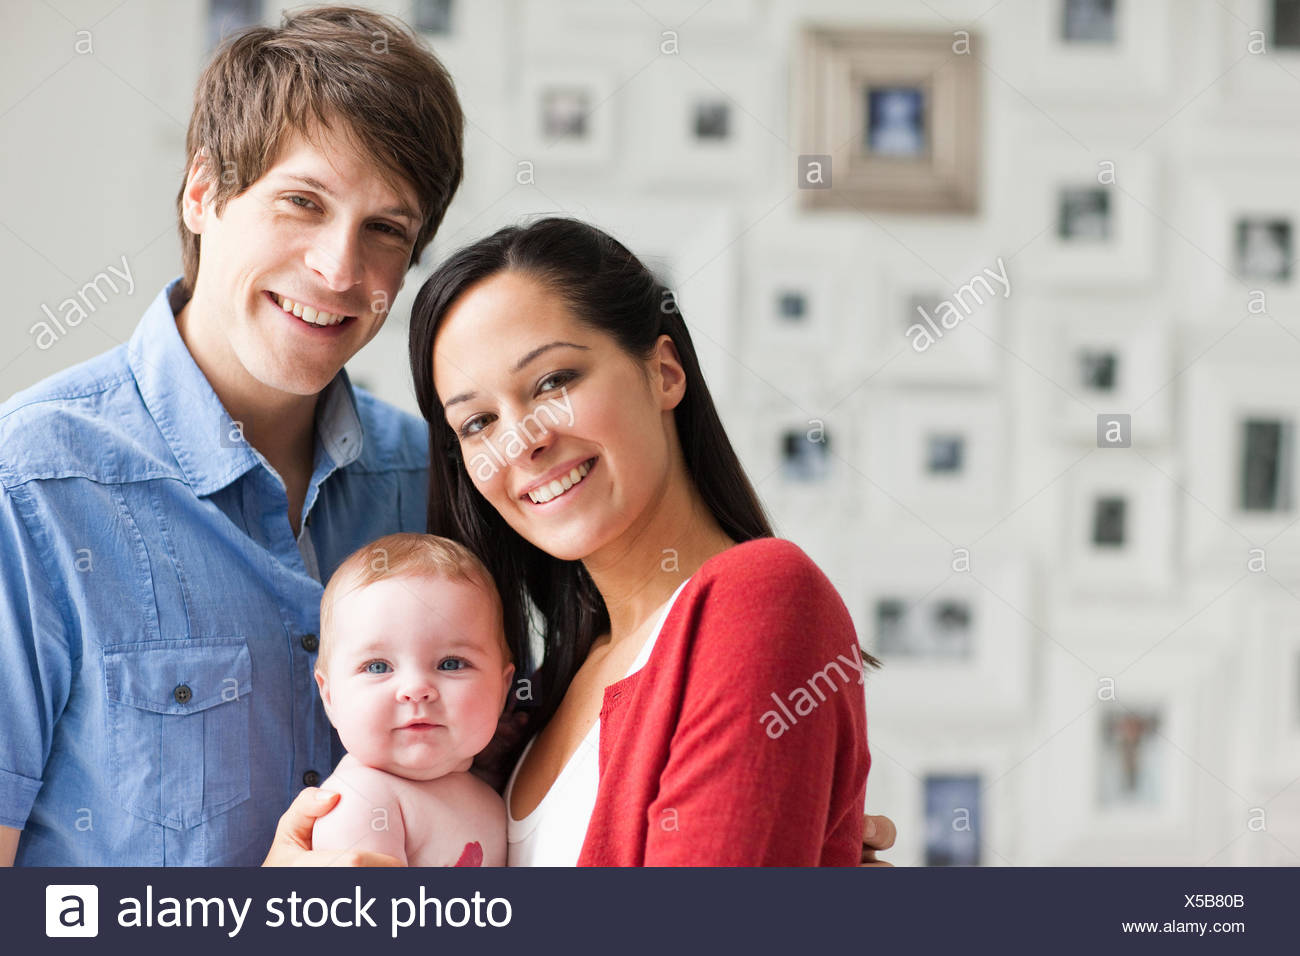 Smiling parents holding baby Photo Stock